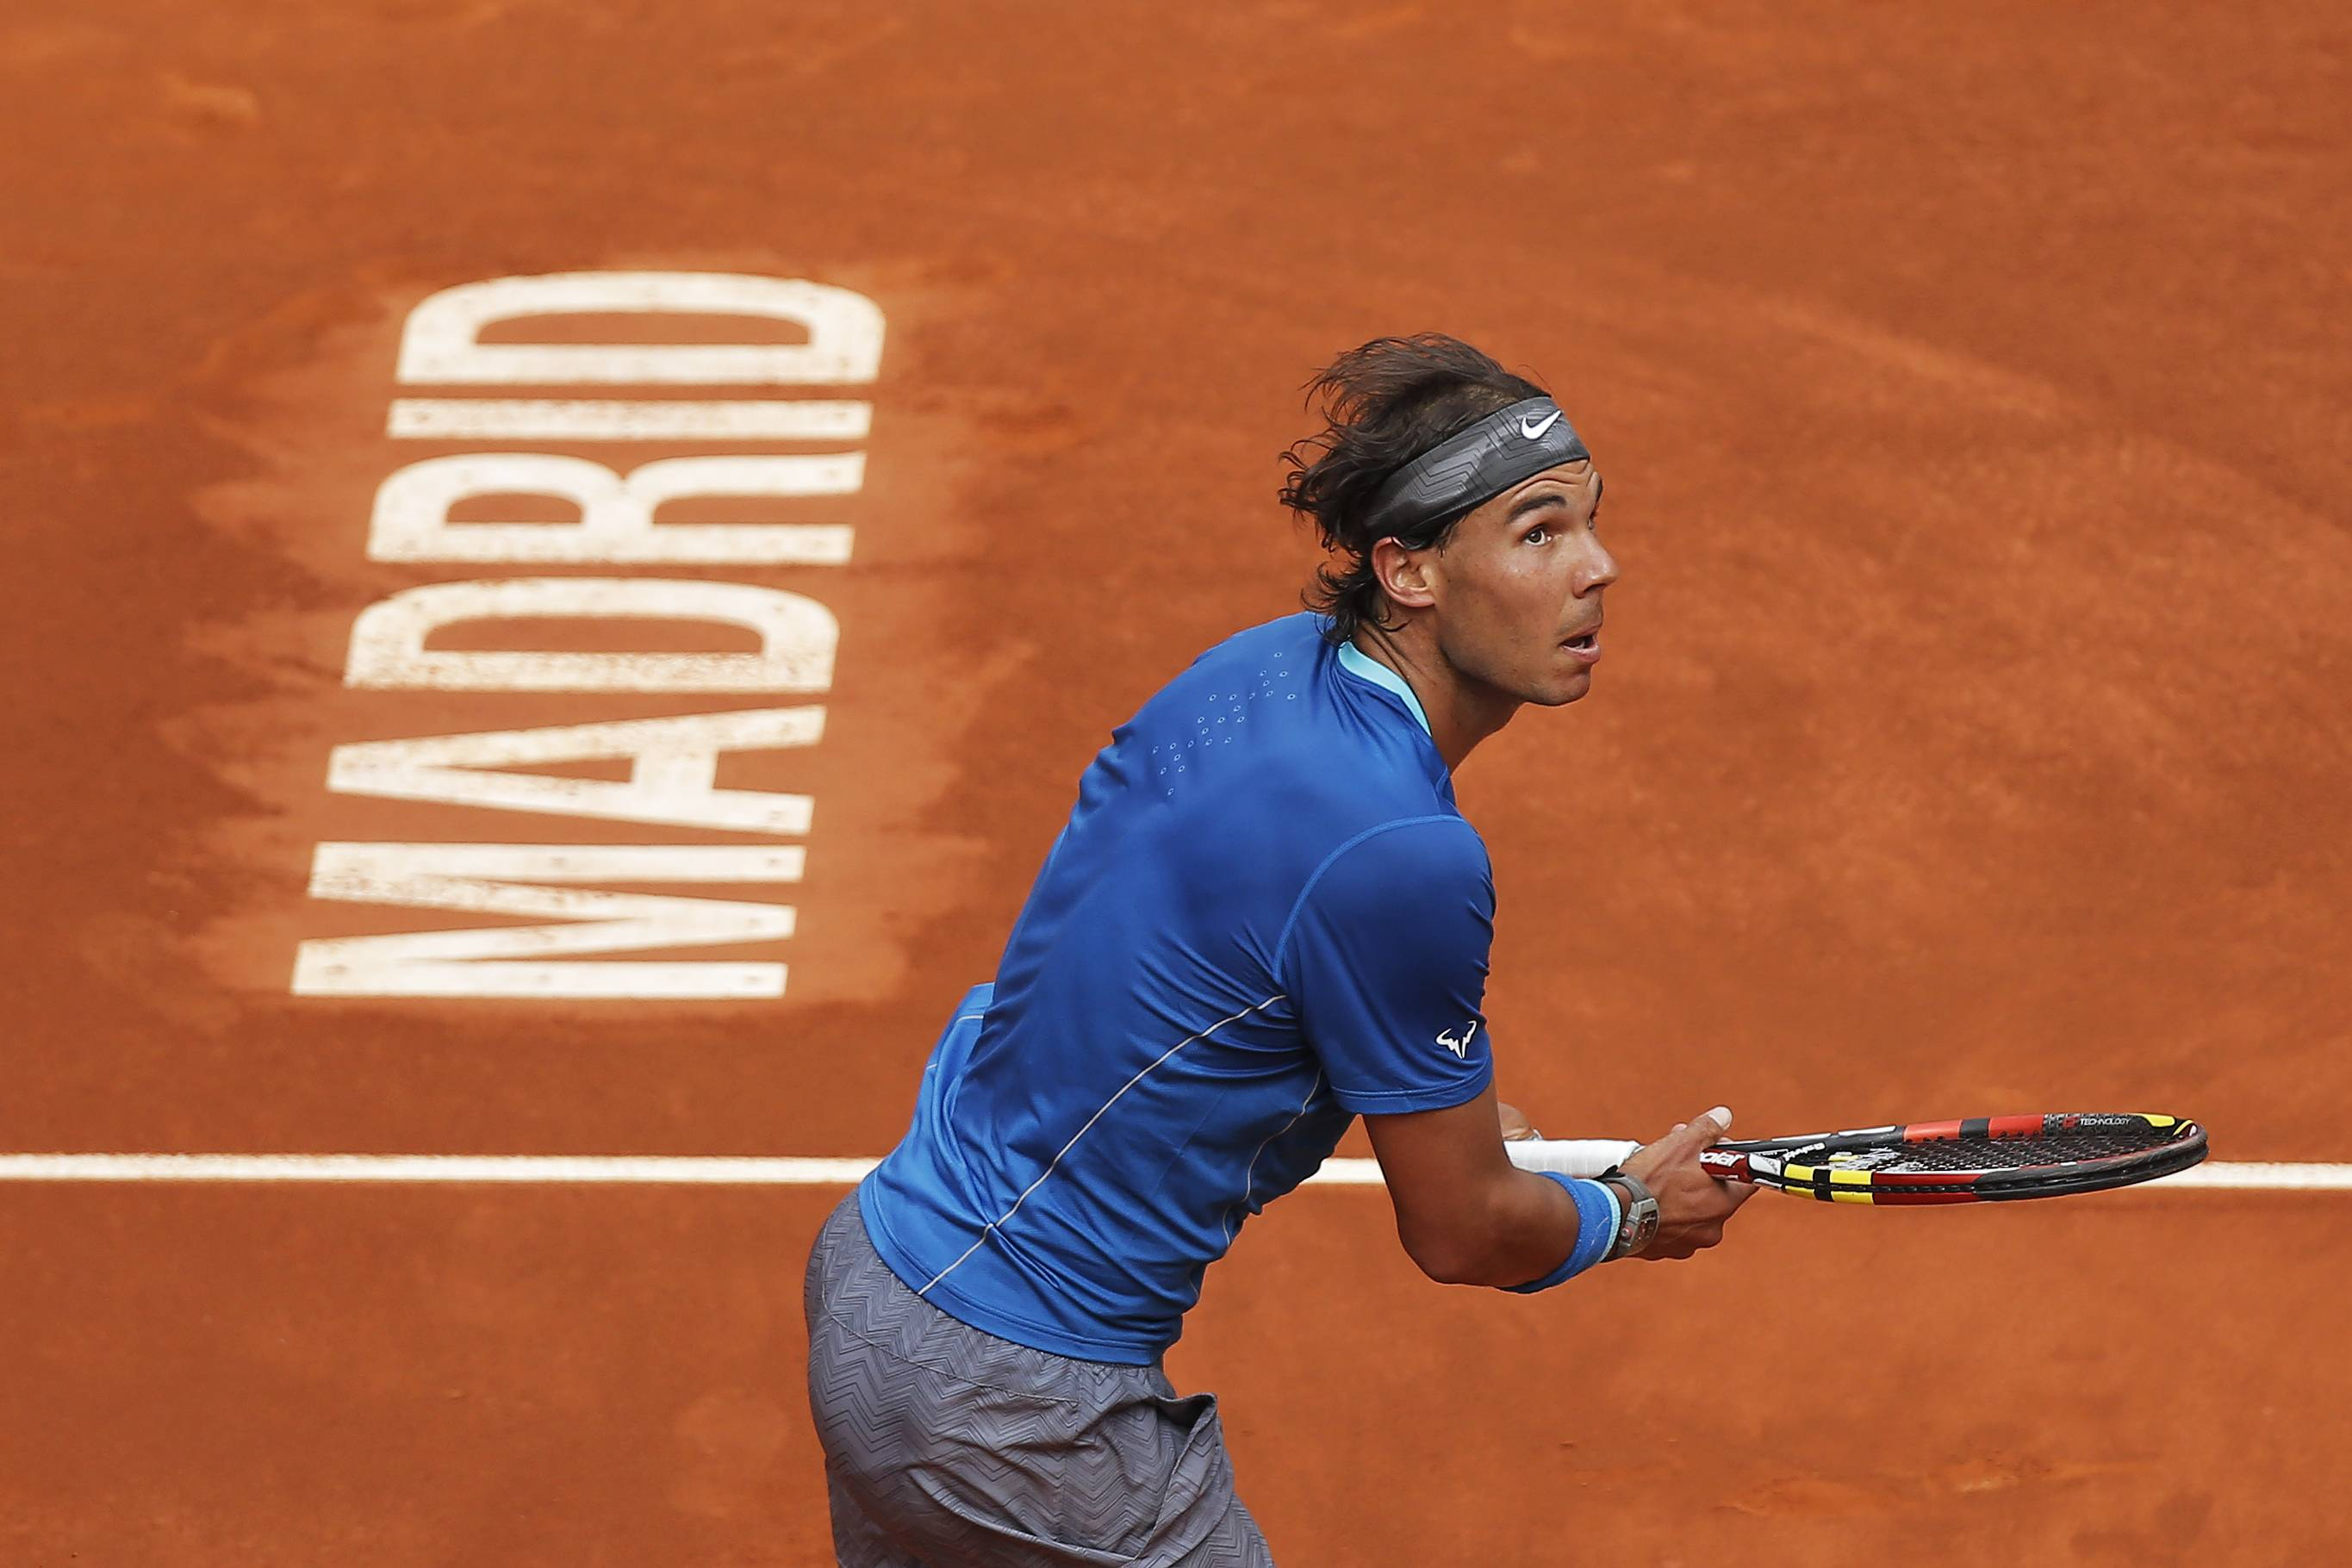 Rafael Nadal from Spain runs after the ball during a Madrid Open tennis tournament match against Juan Monaco from Argentina, in Madrid, Spain, Wednesday, May 7, 2014.